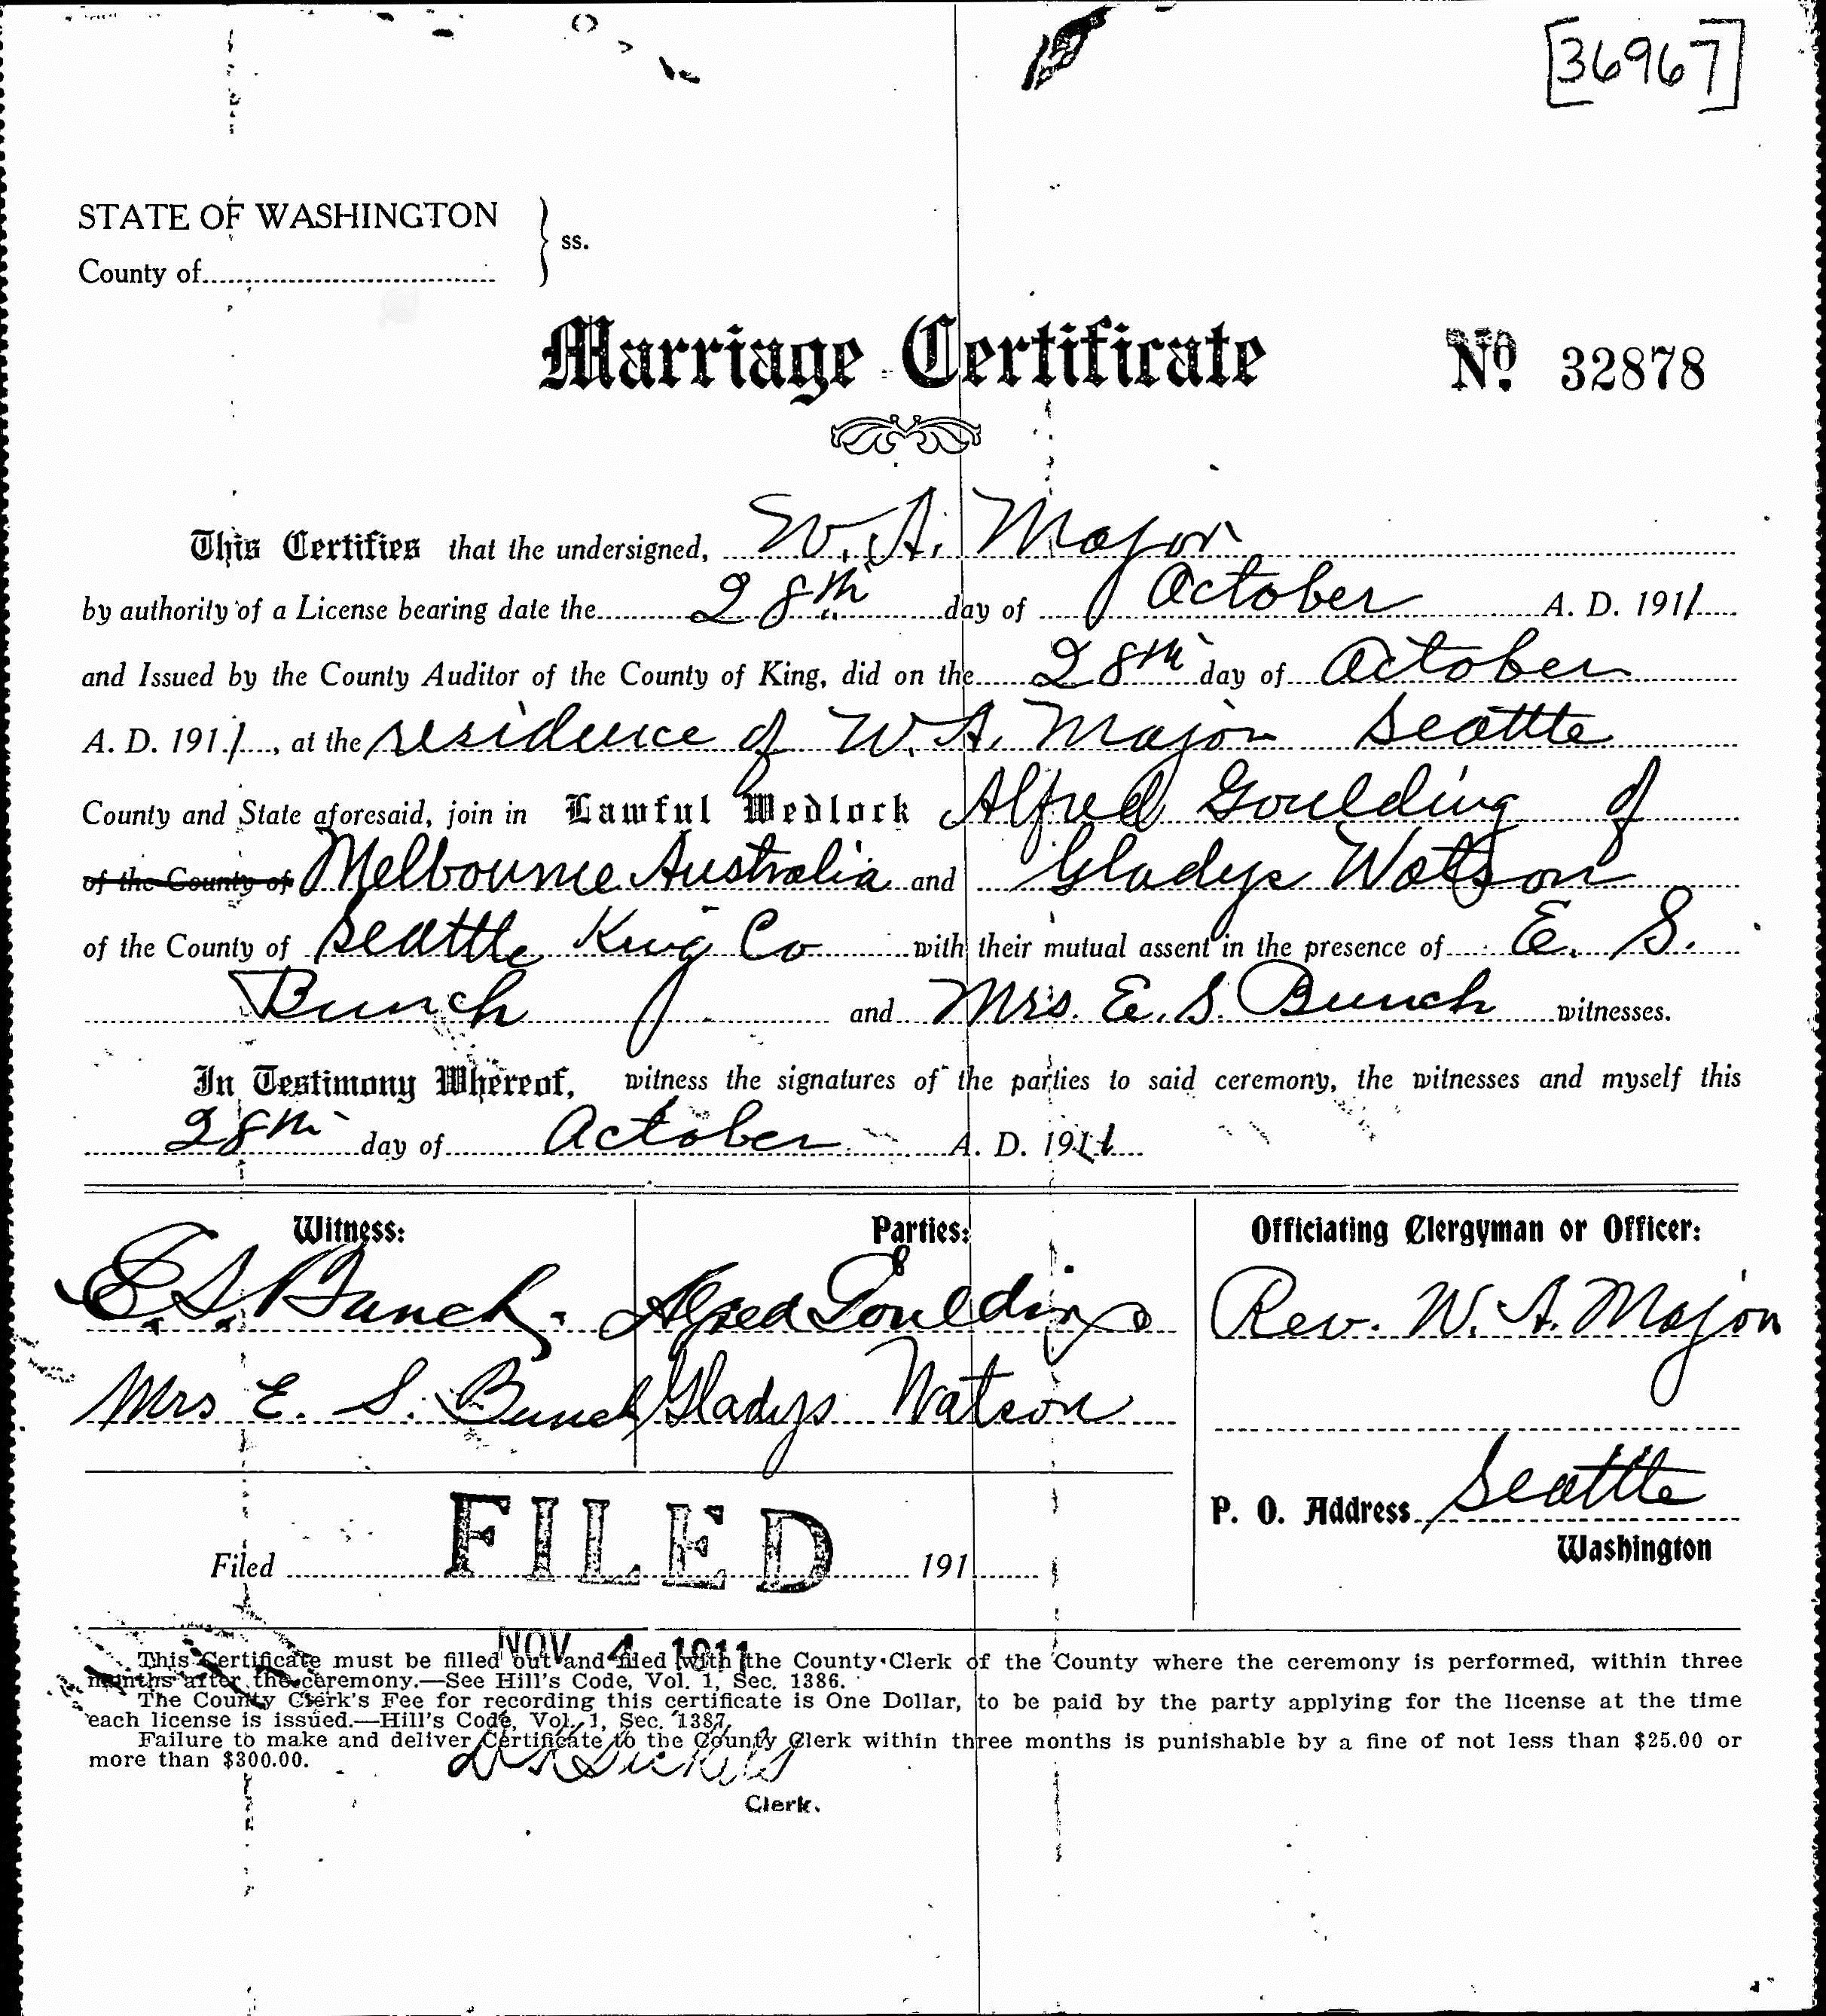 Filealfred John Goulding And Gladys Watson Marriage Certificate